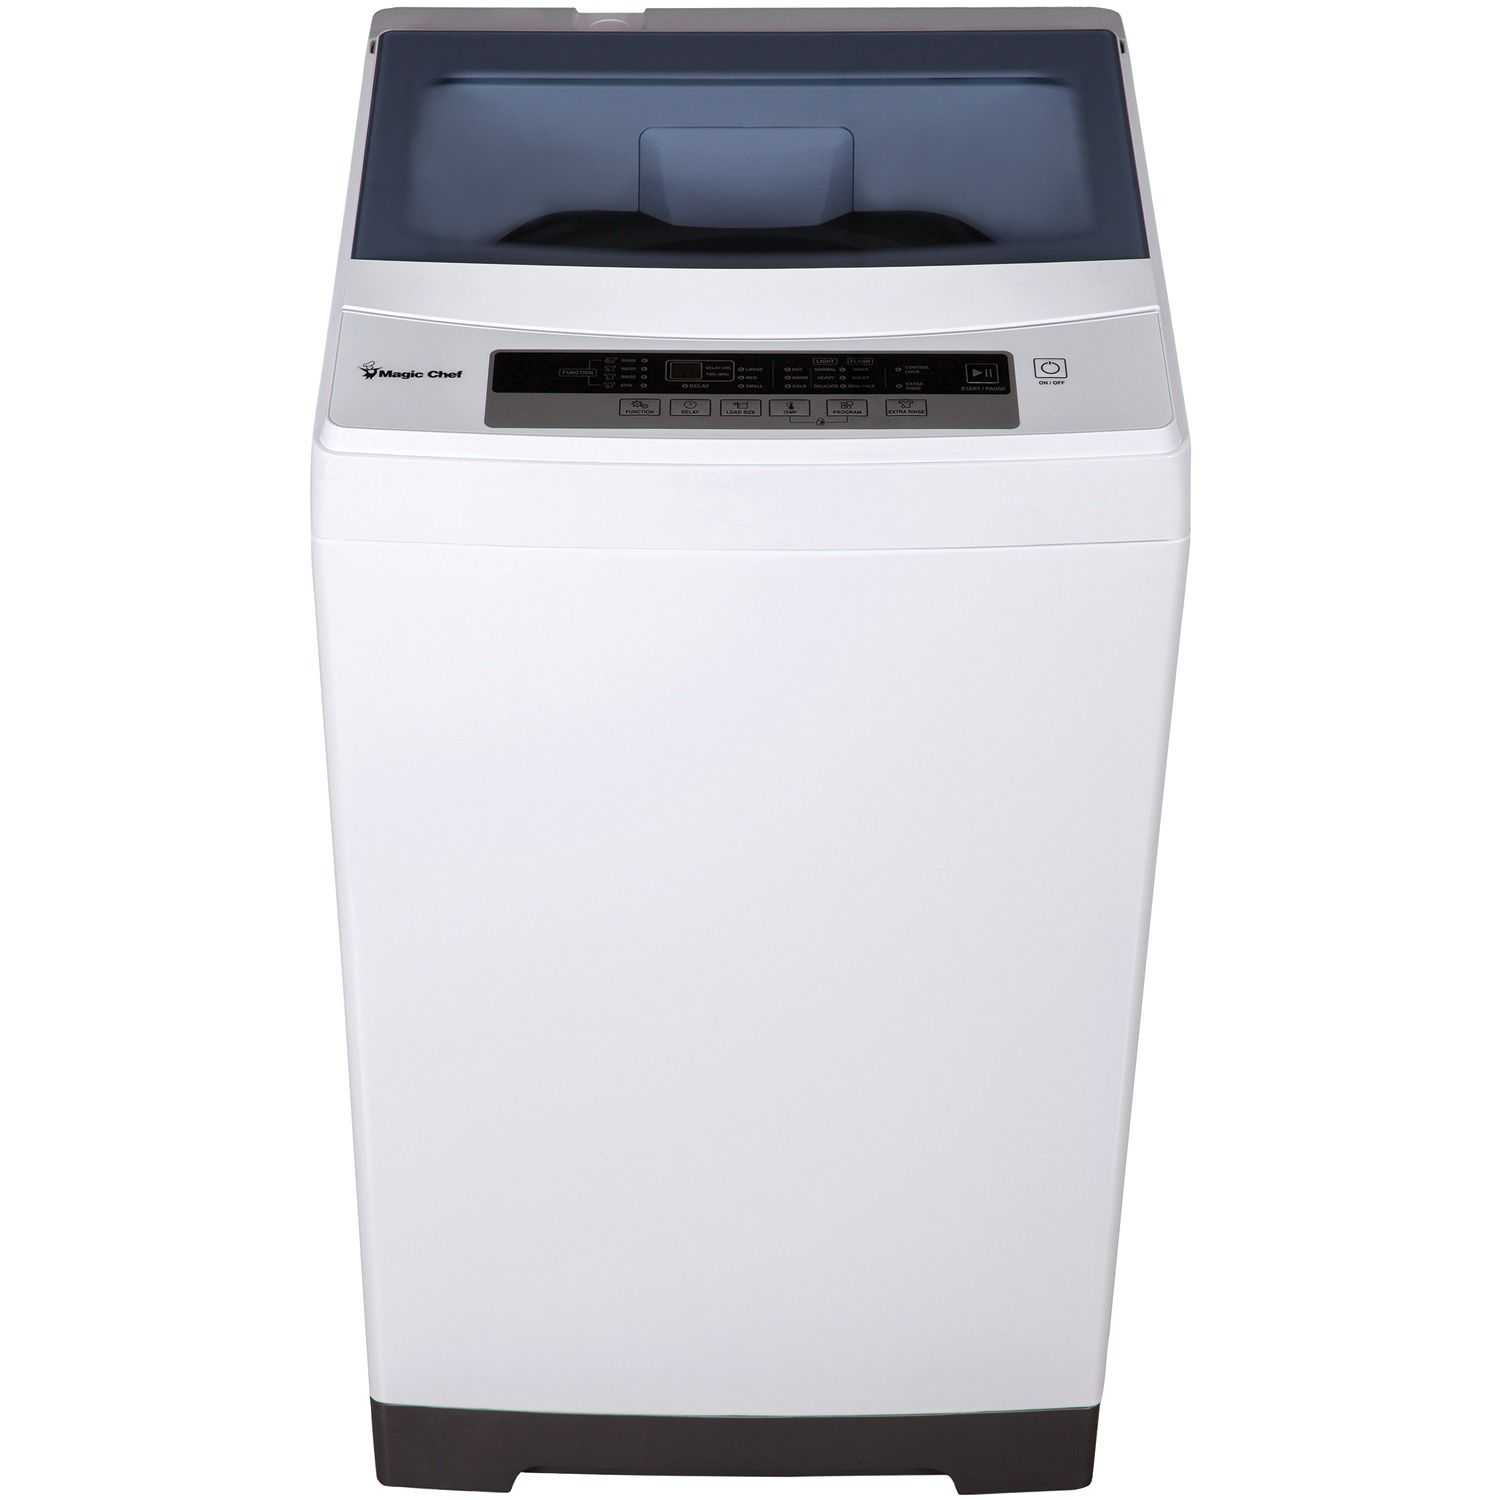 The Magic Chef MCSTCW16W4 1.6 cu. ft. Compact White Top Load Washing Machine has a stainless steel tub.